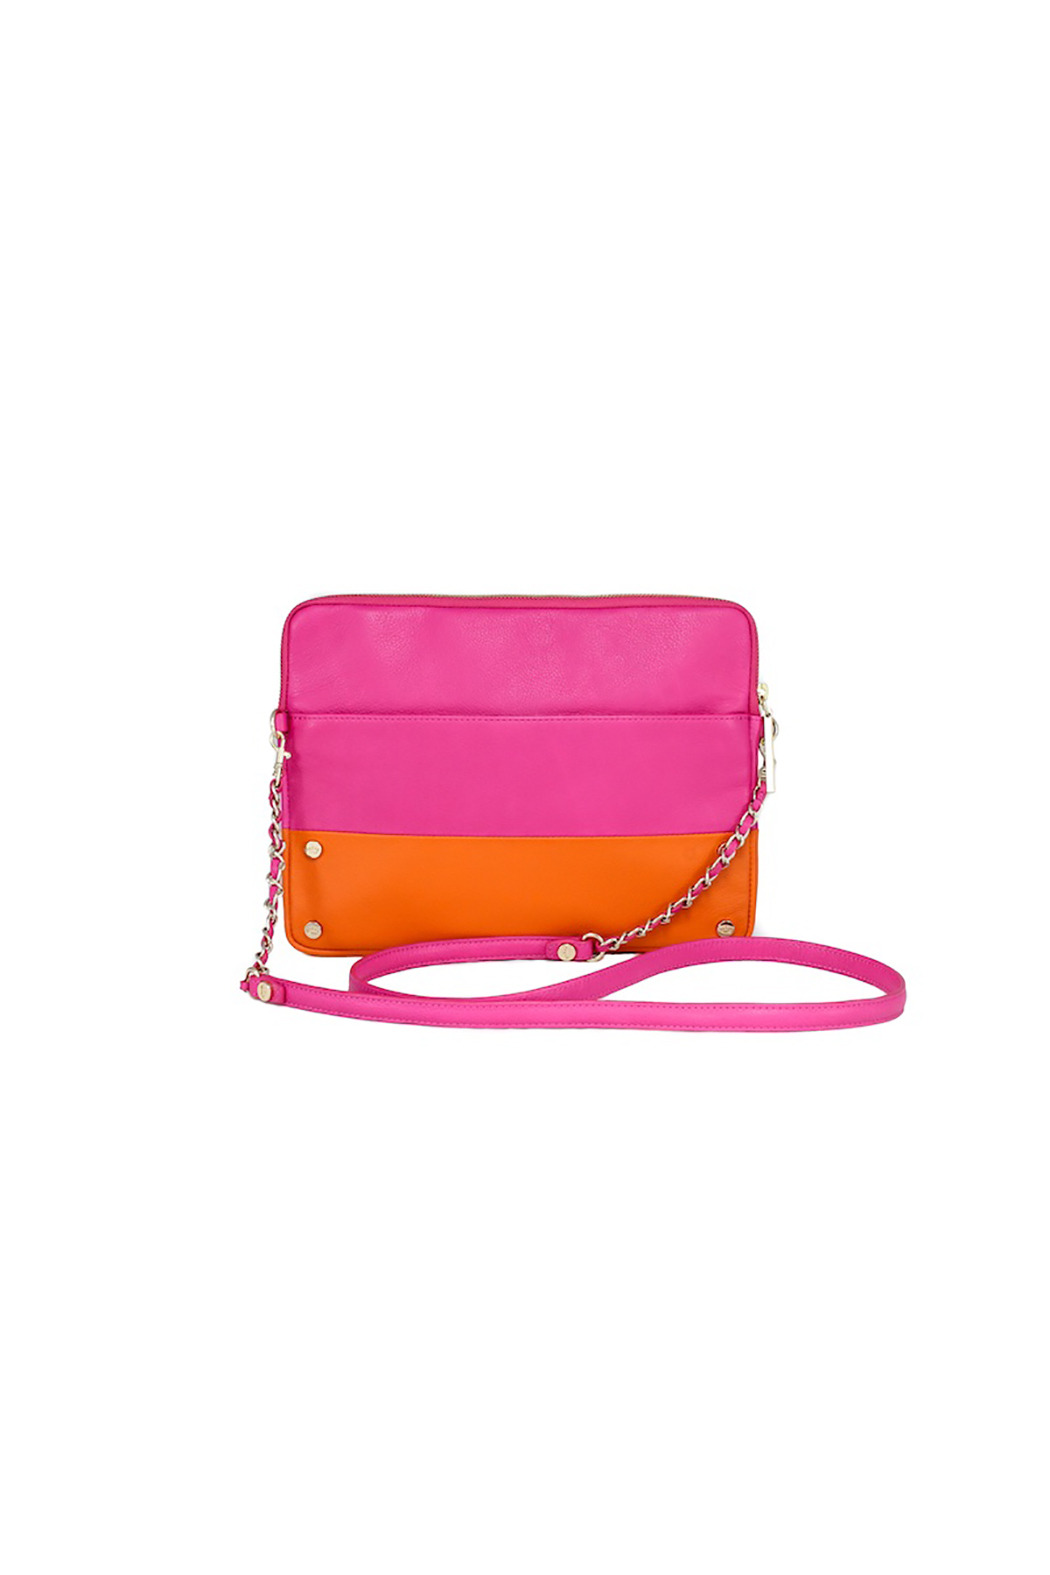 Elaine Turner Pink iPad Crossbody - Front Cropped Image